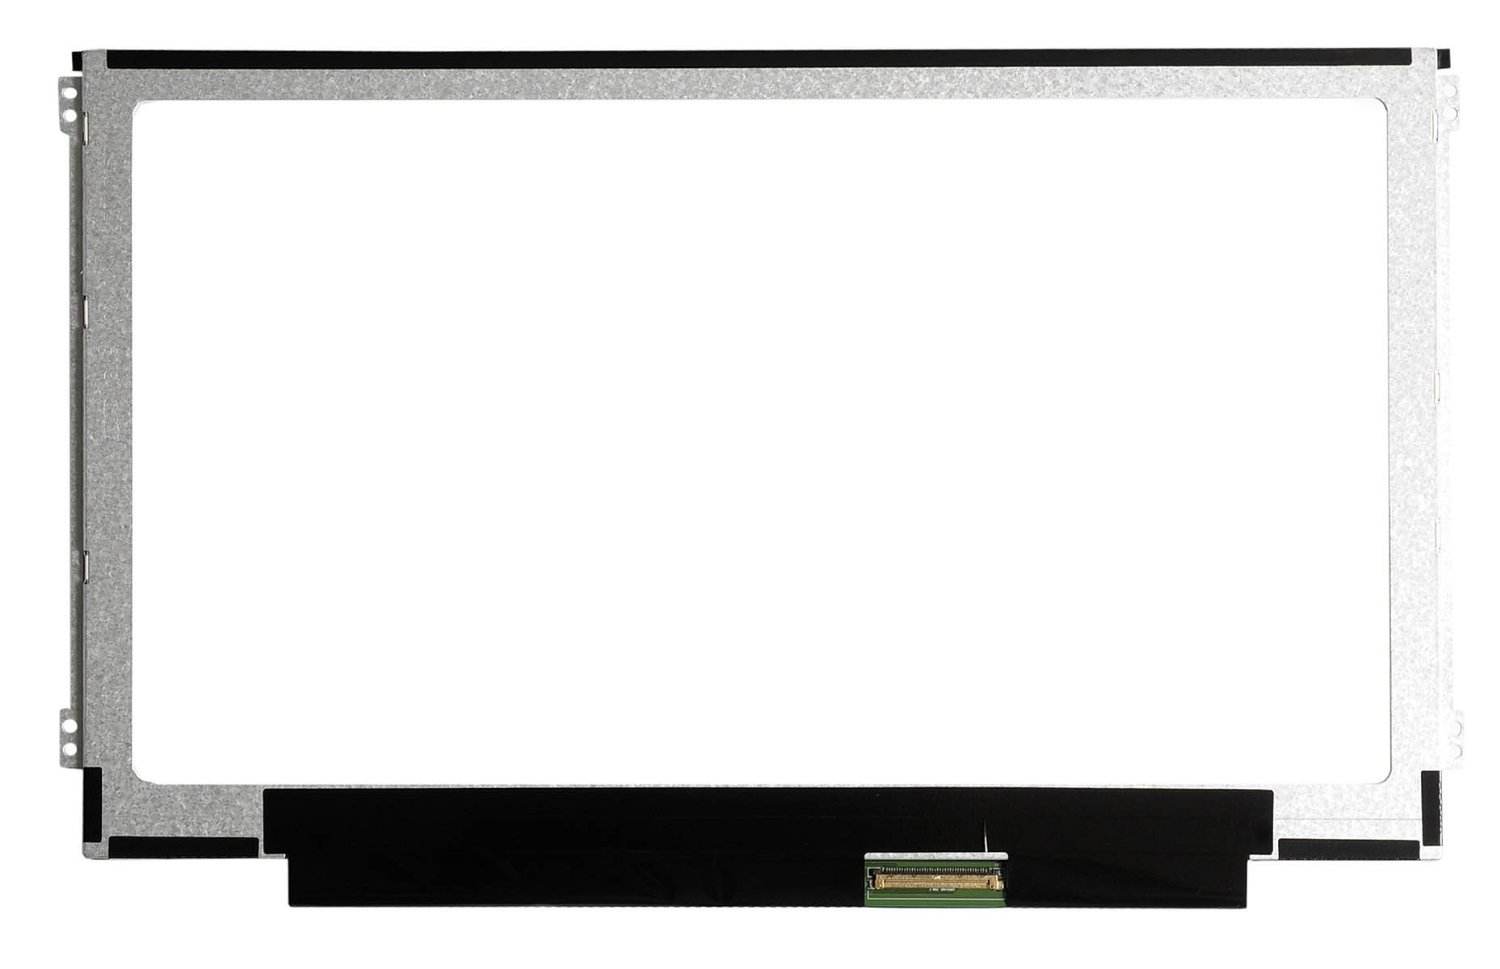 New For Samsung Chromebook 303C 11.6 WXGA HD LED LCD Screen XE303C12-H01US , XE303C Series